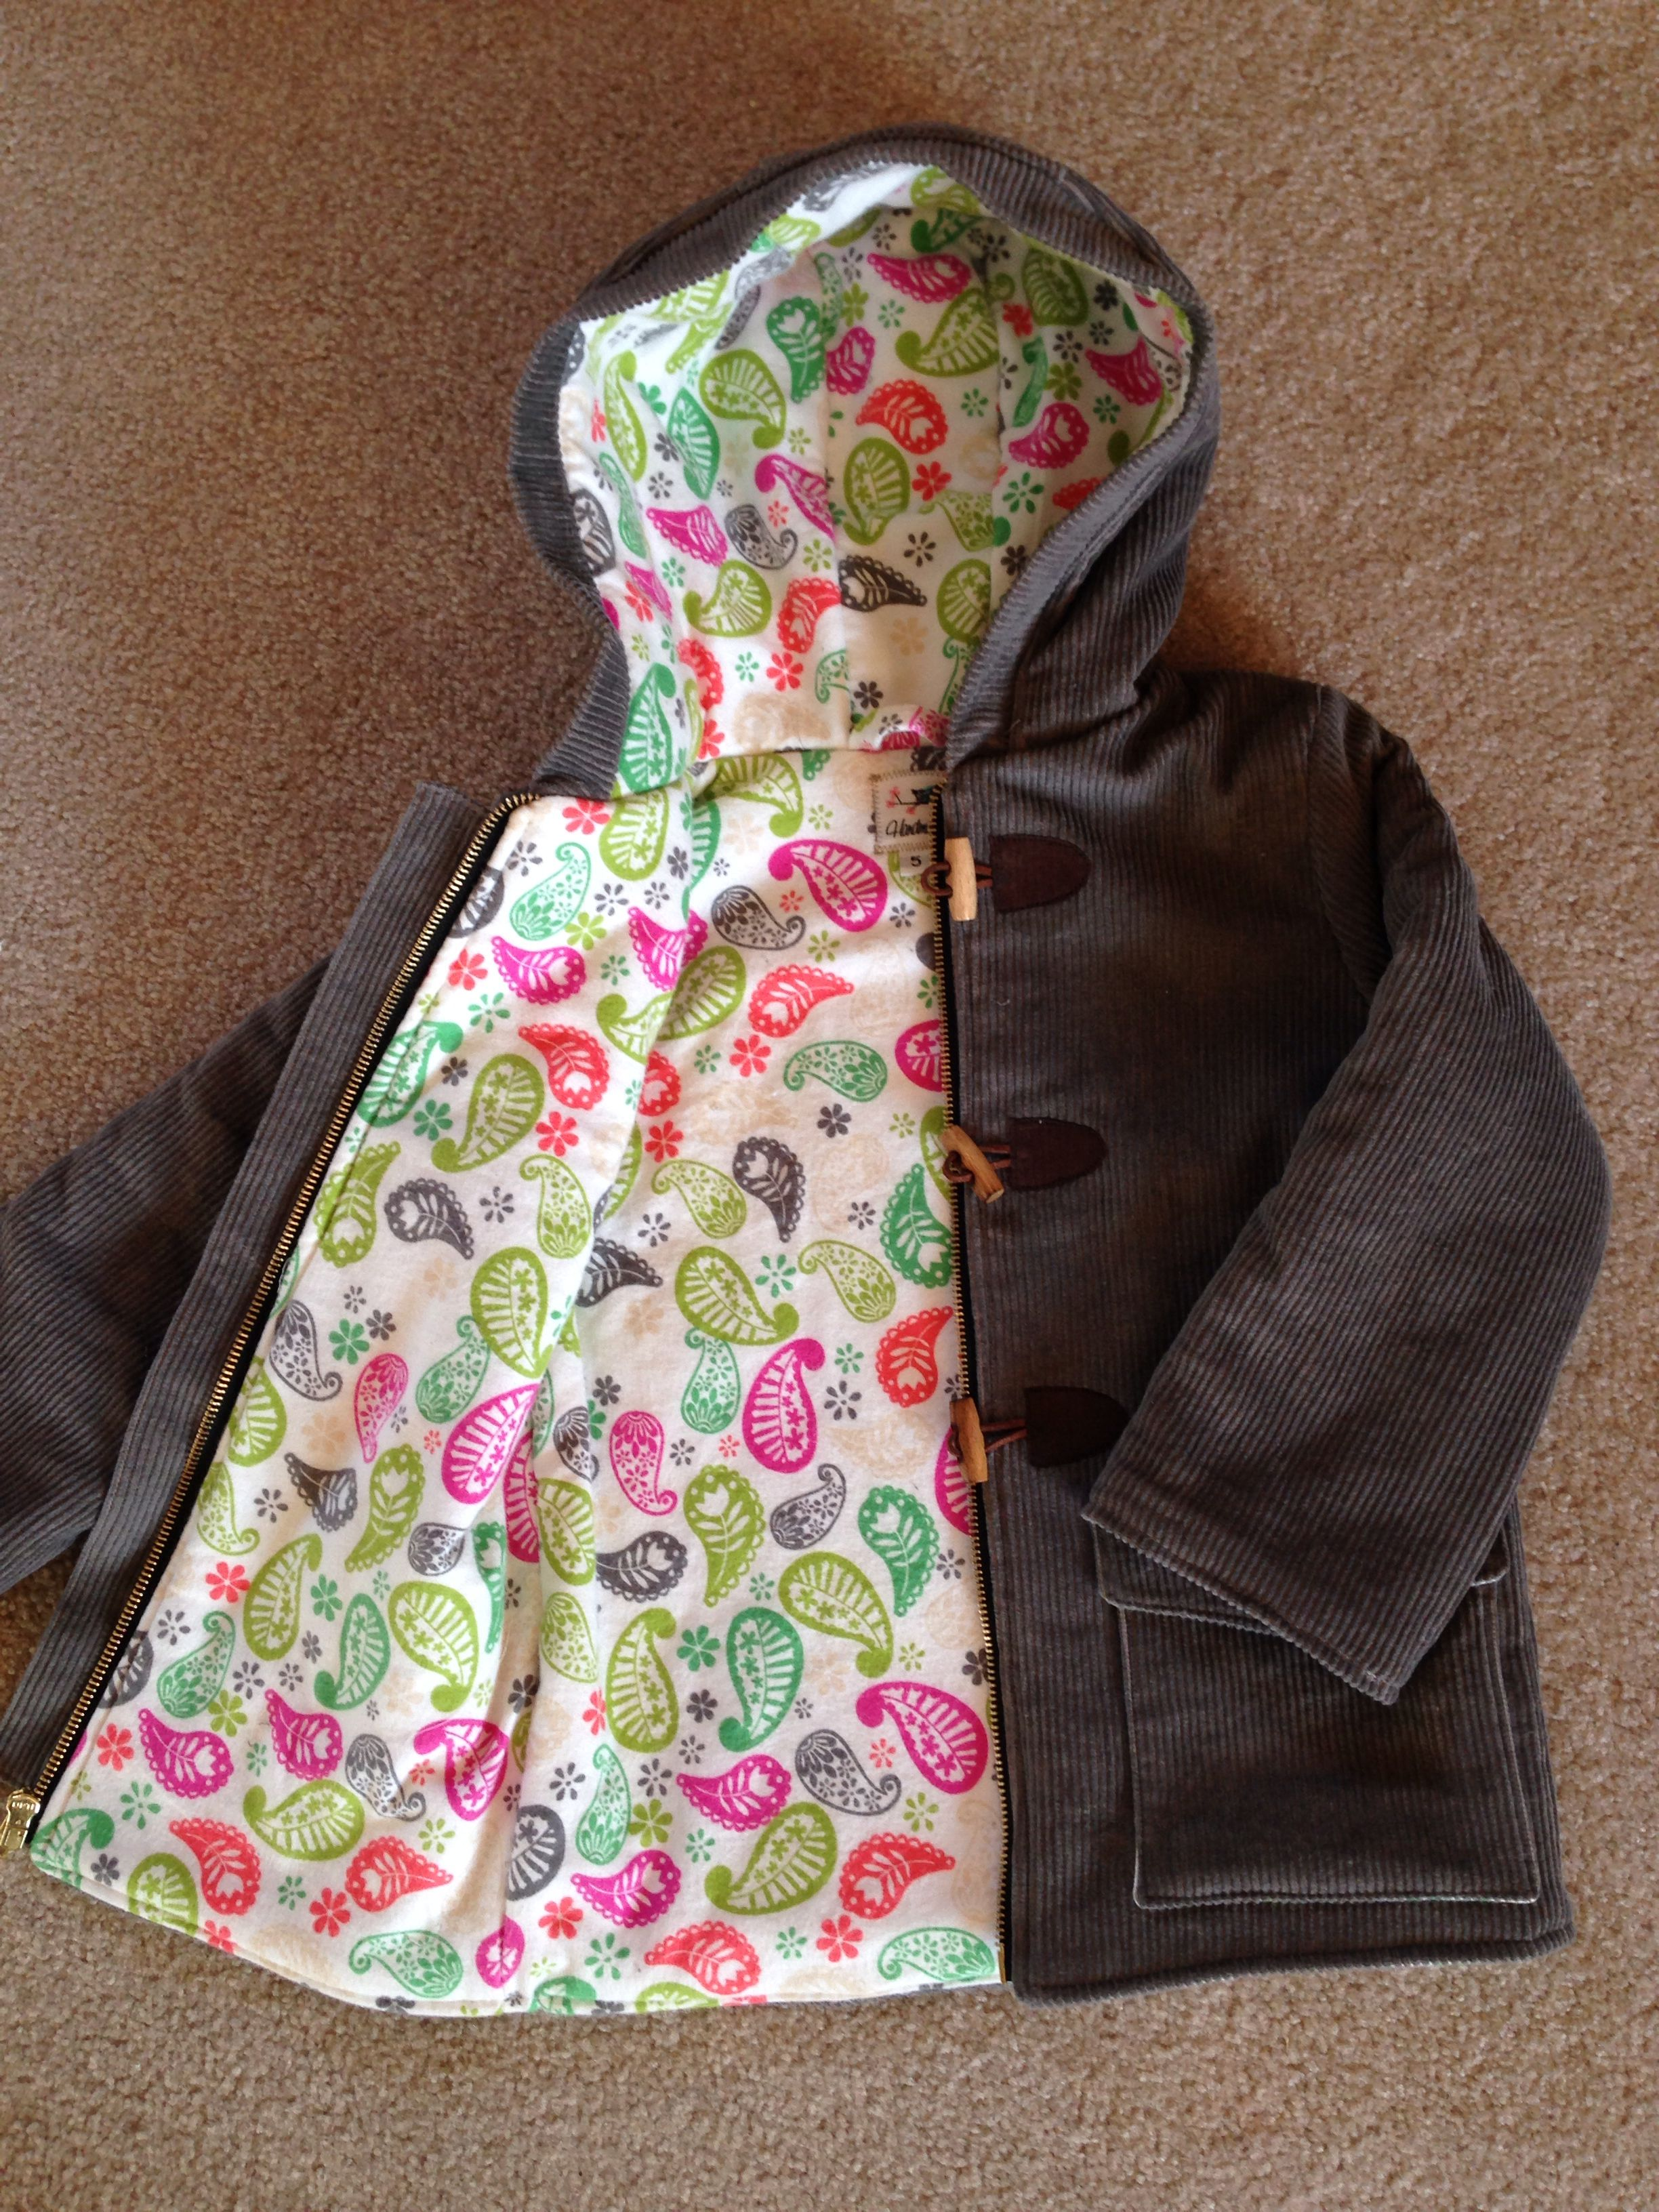 c4b3660f0305 Downton Duffle coat from Peekaboo Pattern Shop